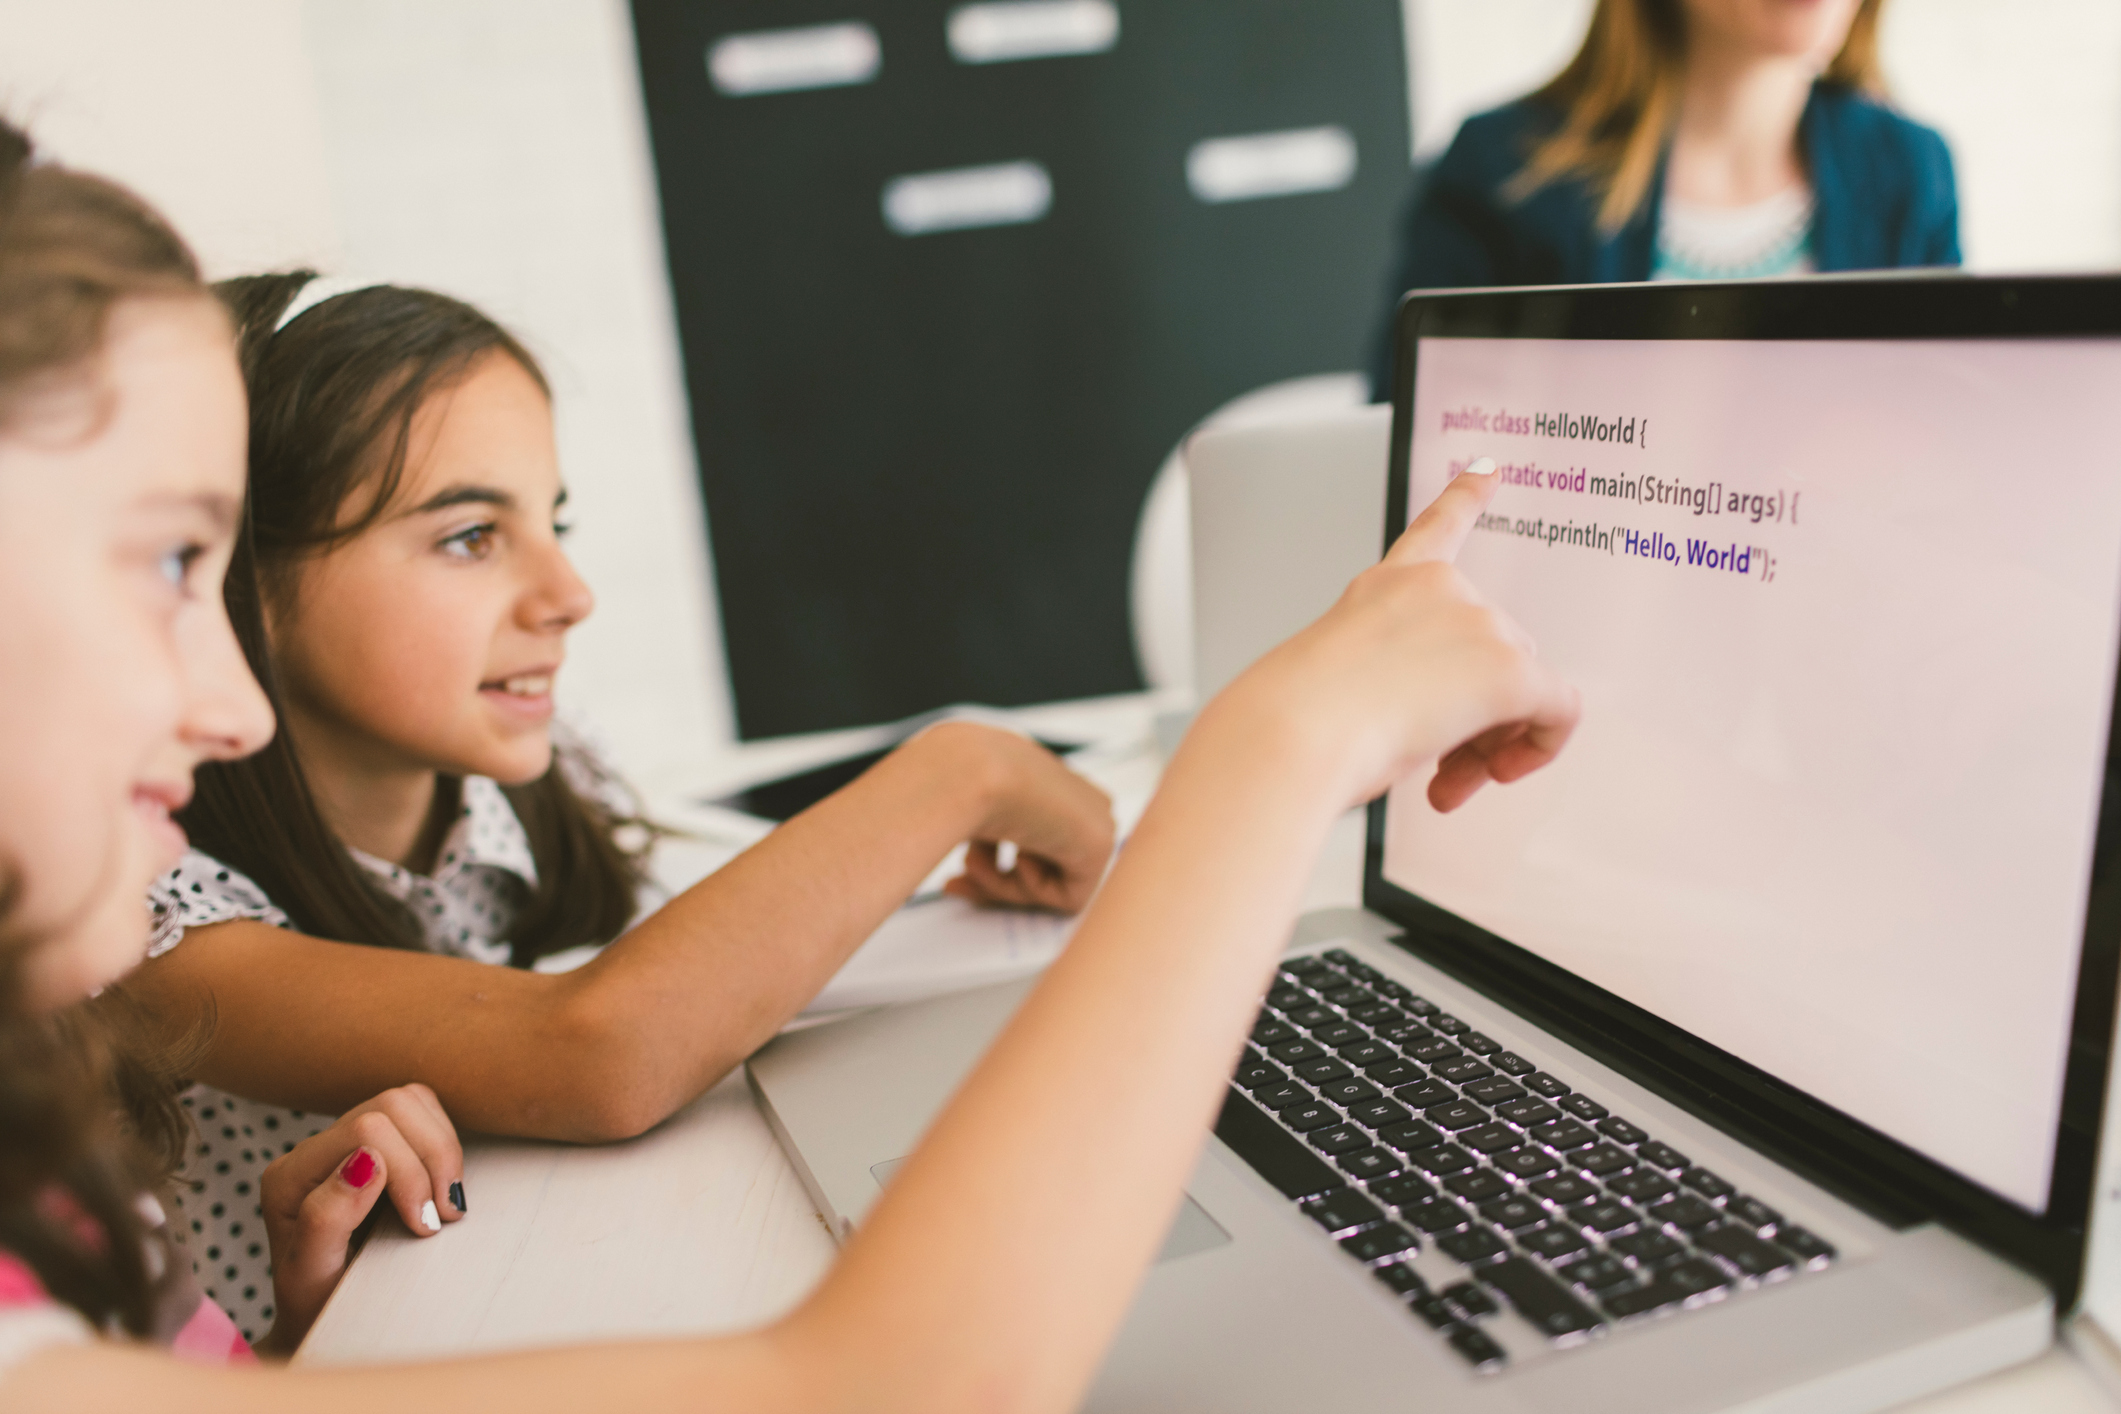 A beginner's guide to teaching kids coding (even when you don't know how to code)